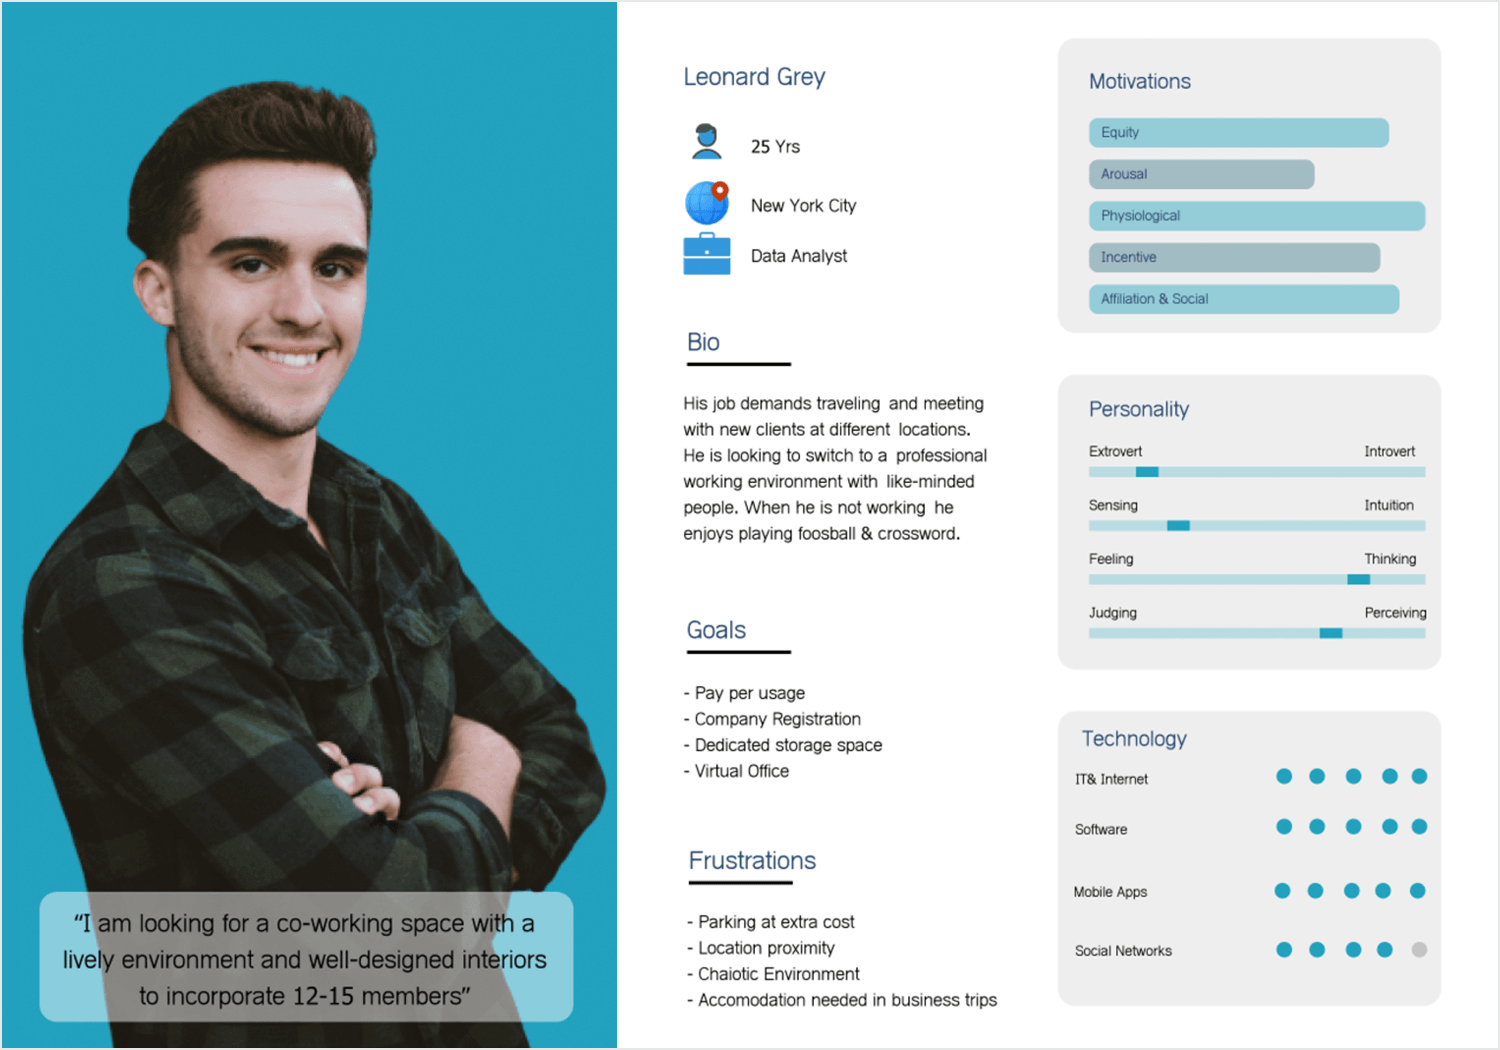 User persona templates - the data analyst